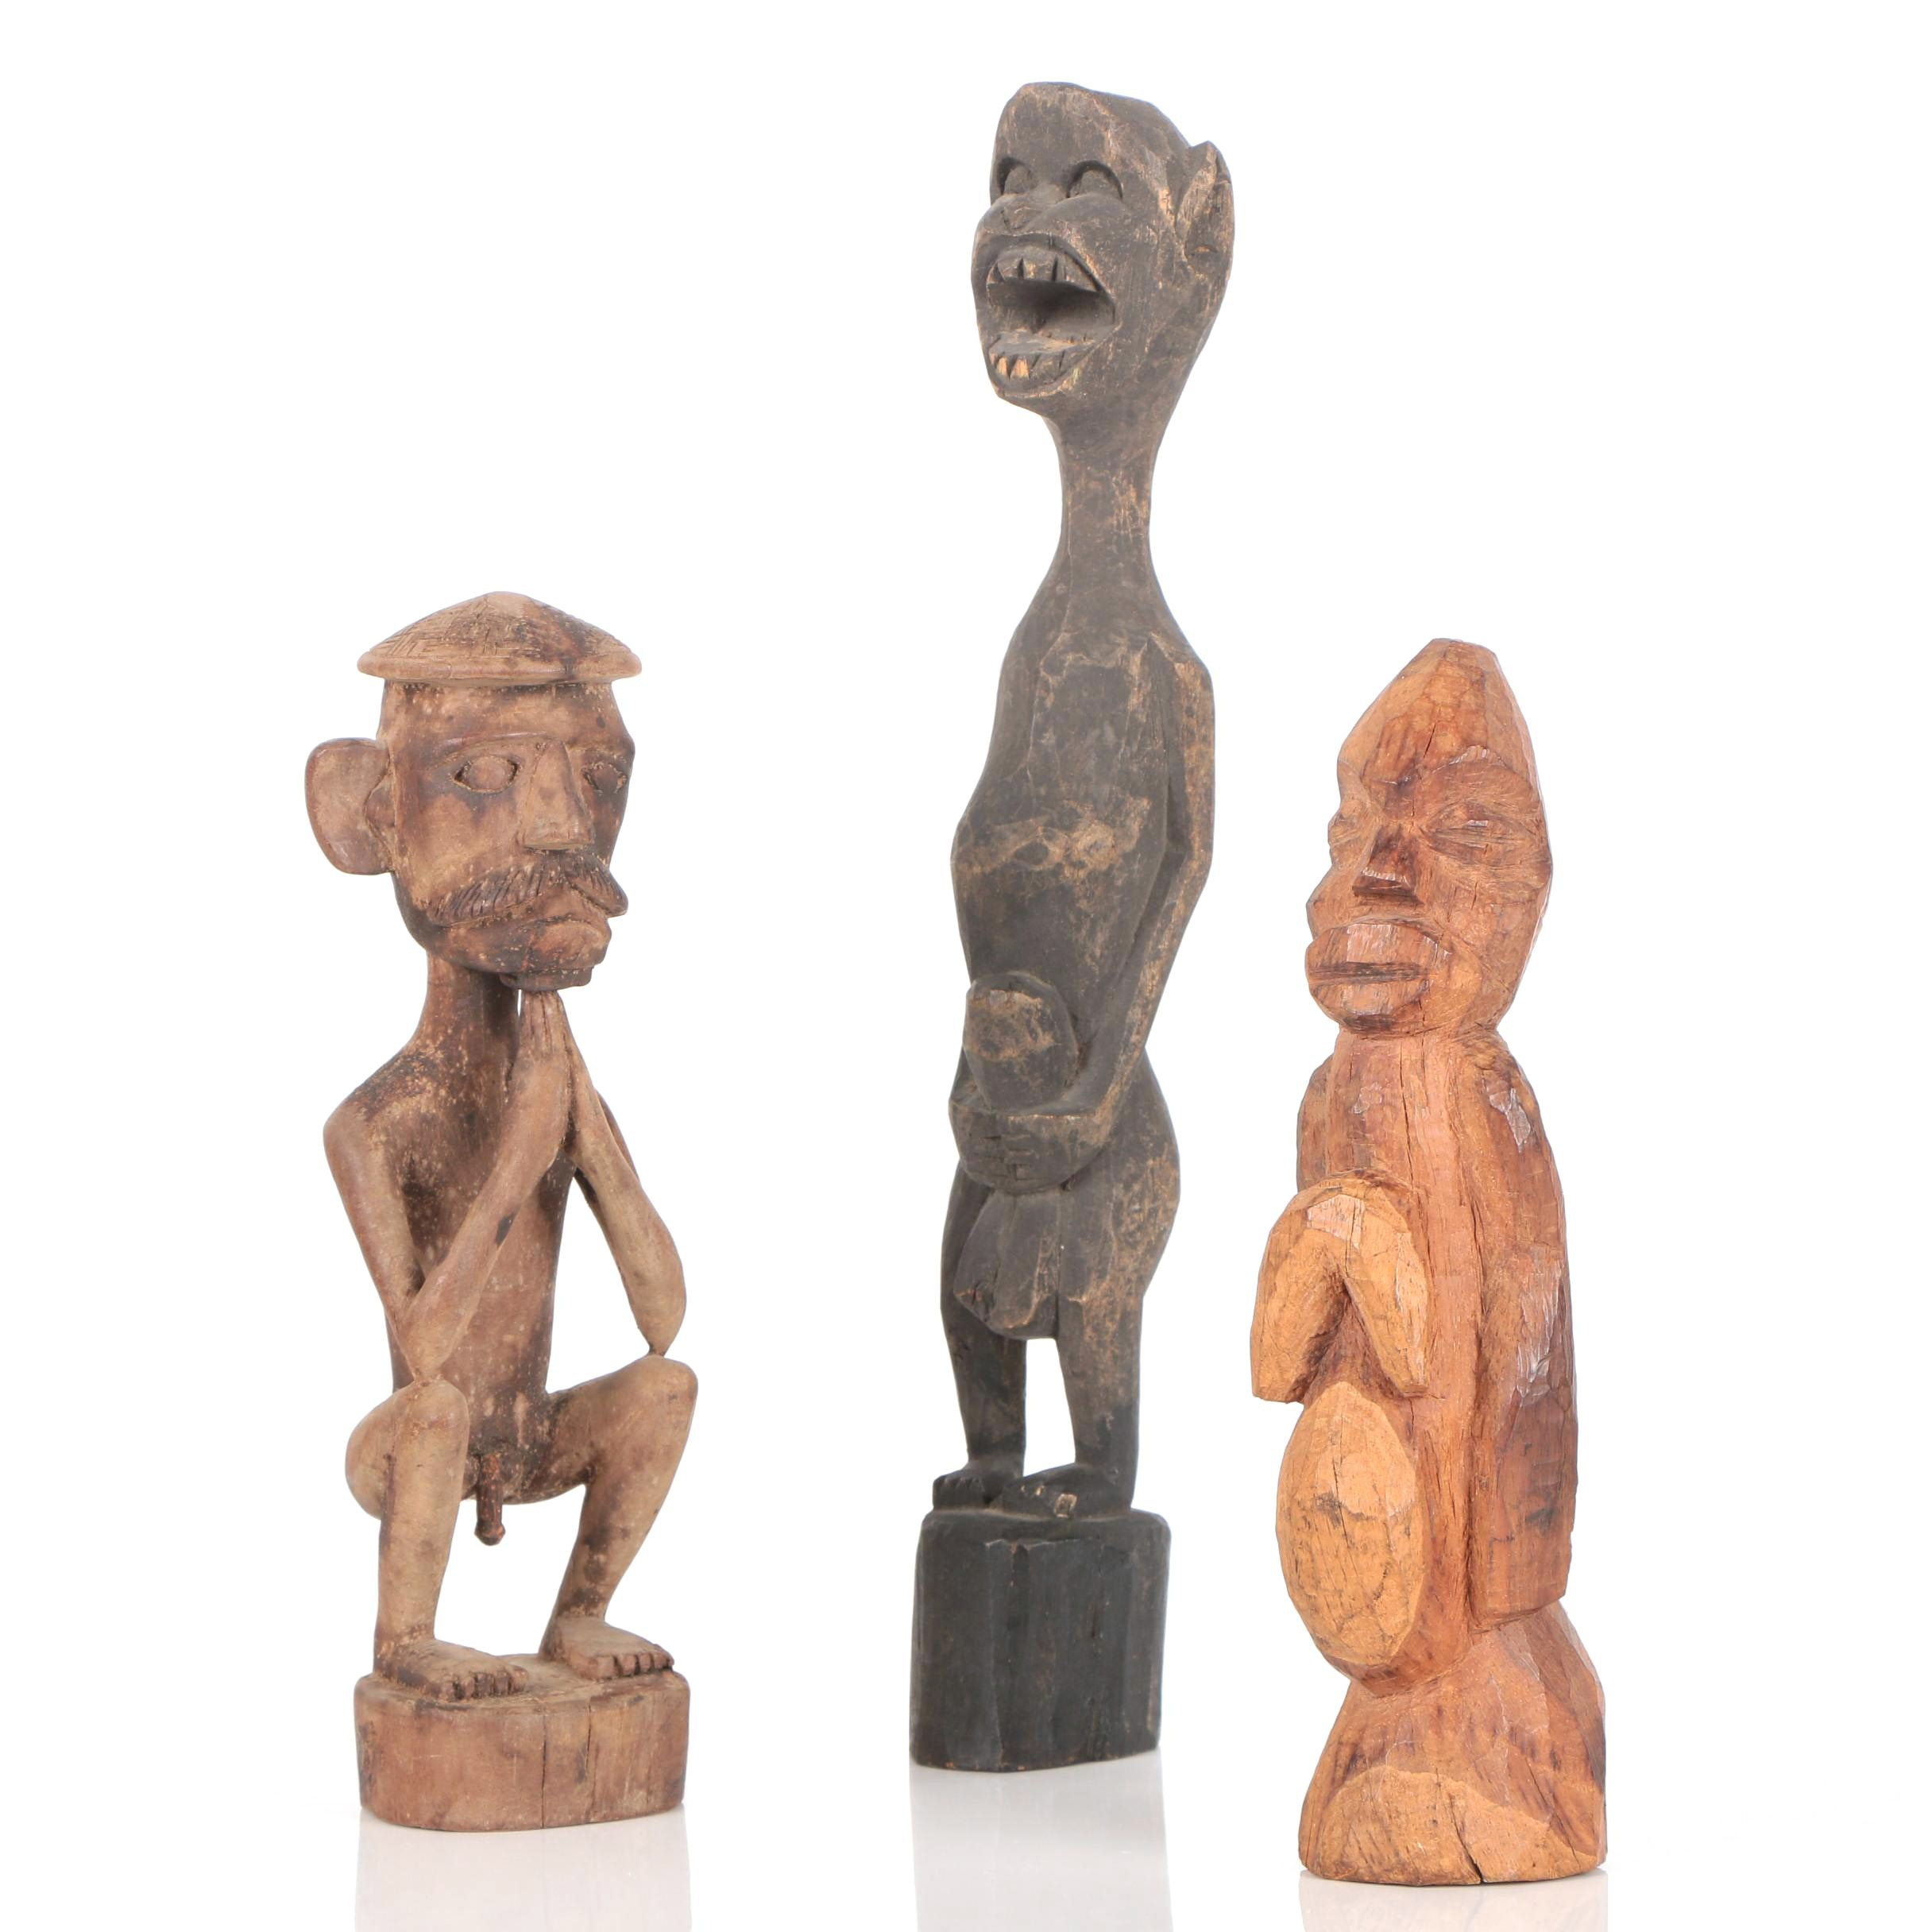 Carved Wood Figural Sculptures